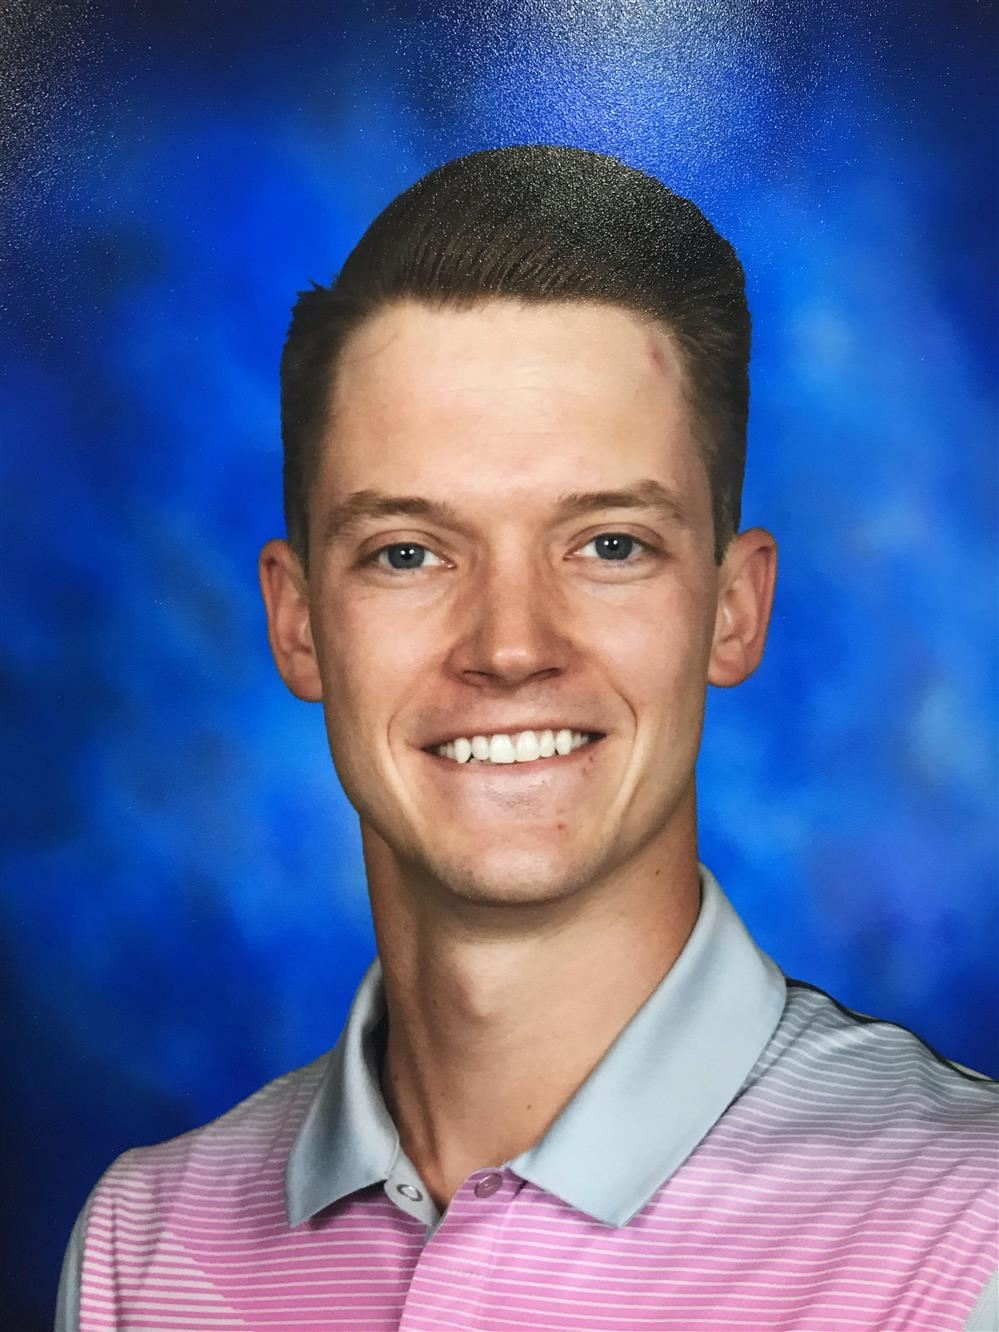 PEWAUKEE HIRES SCANNELL AS NEW HIGH SCHOOL GIRLS GOLF COACH